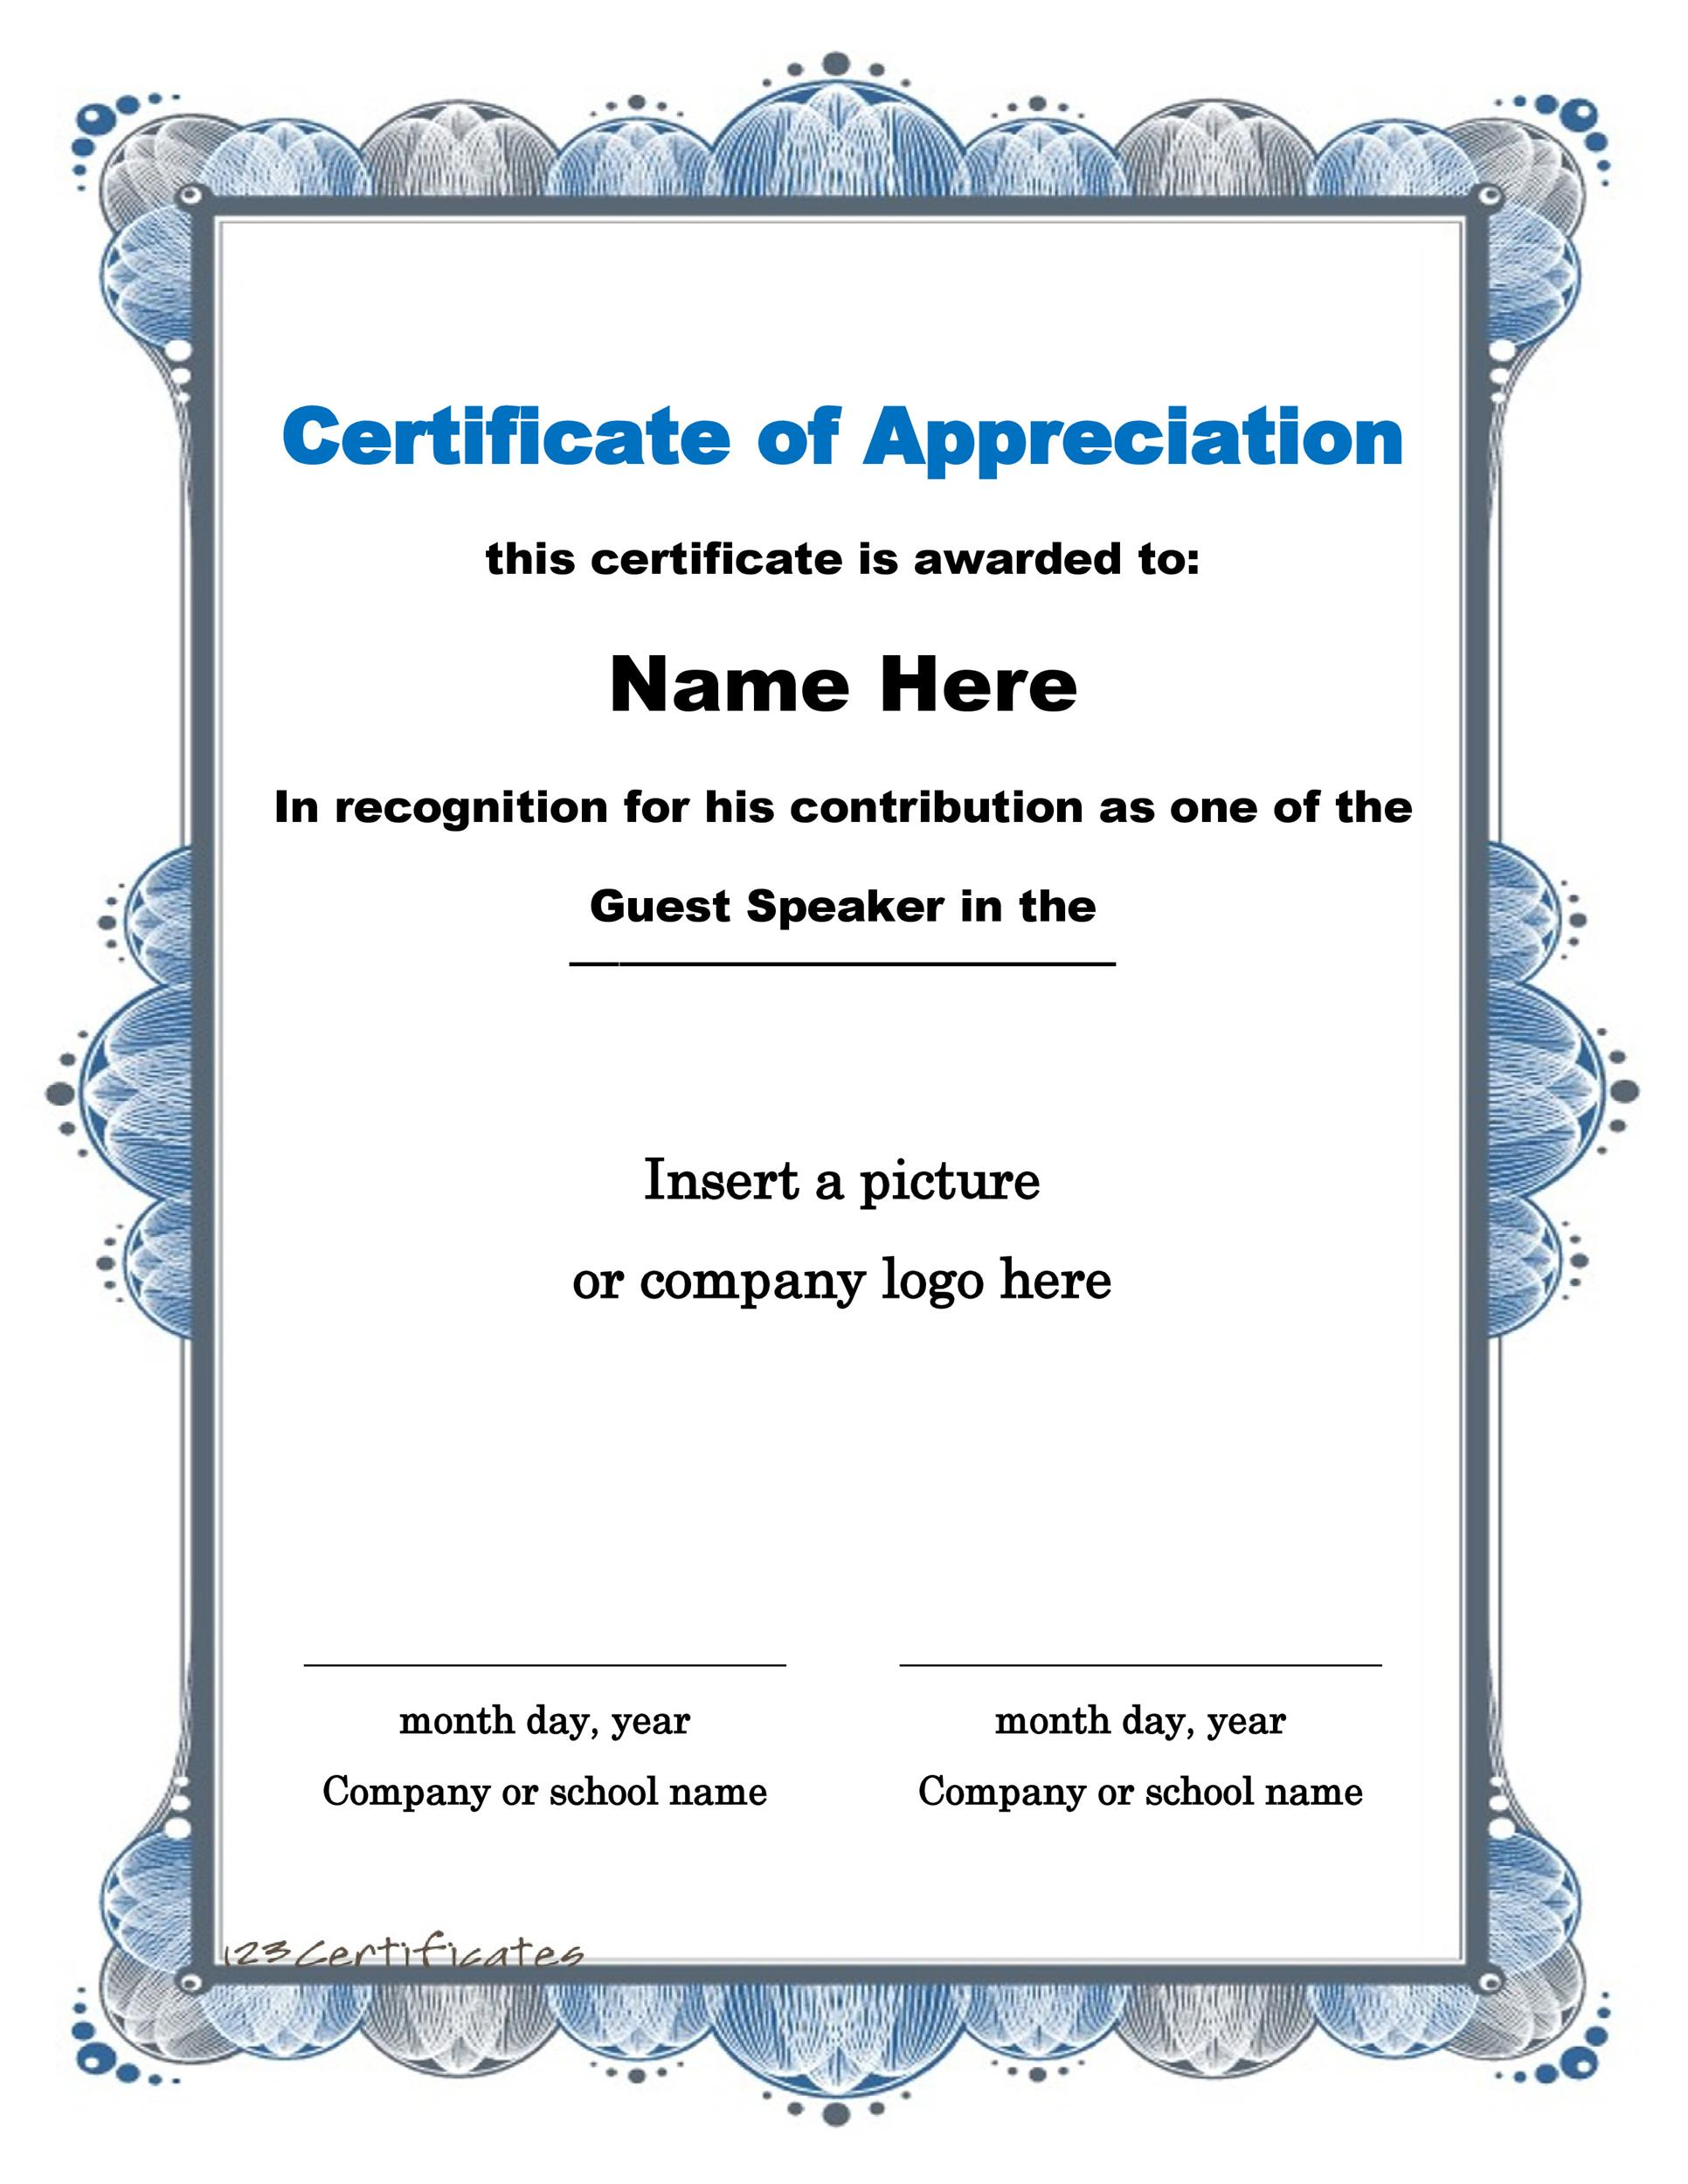 30 free certificate of appreciation templates and letters yelopaper Choice Image